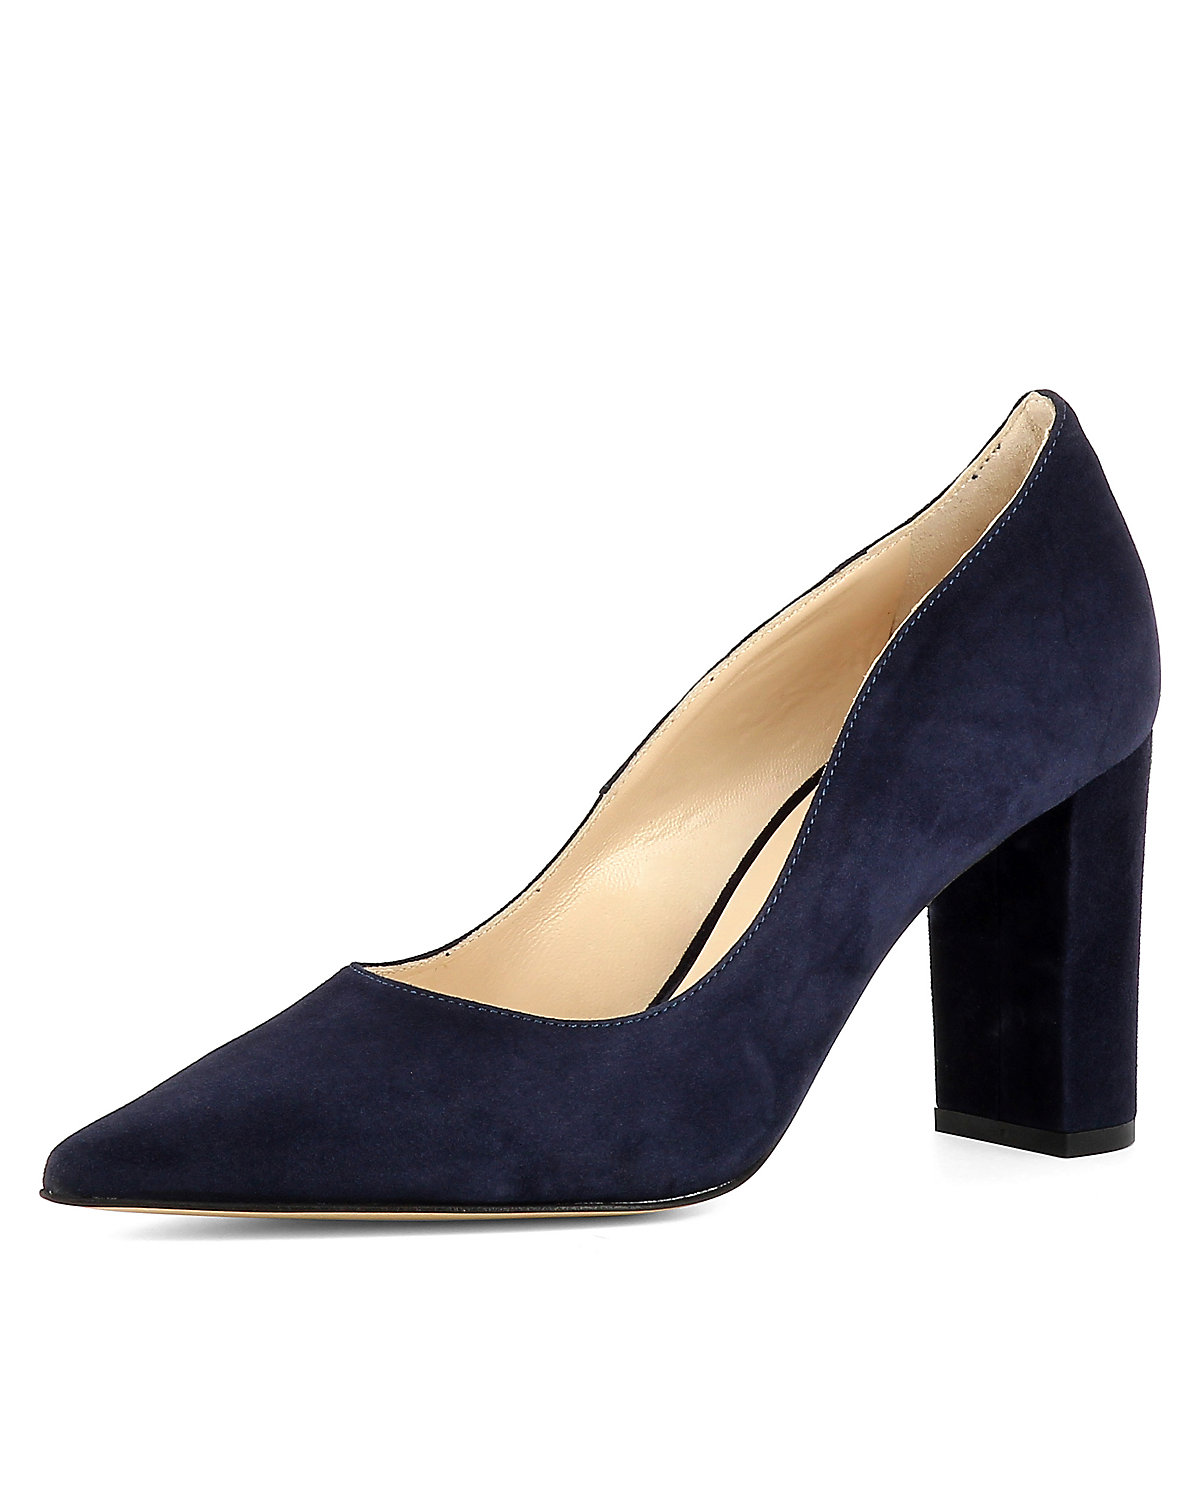 Evita Shoes, JESSICA Klassische Pumps, blau